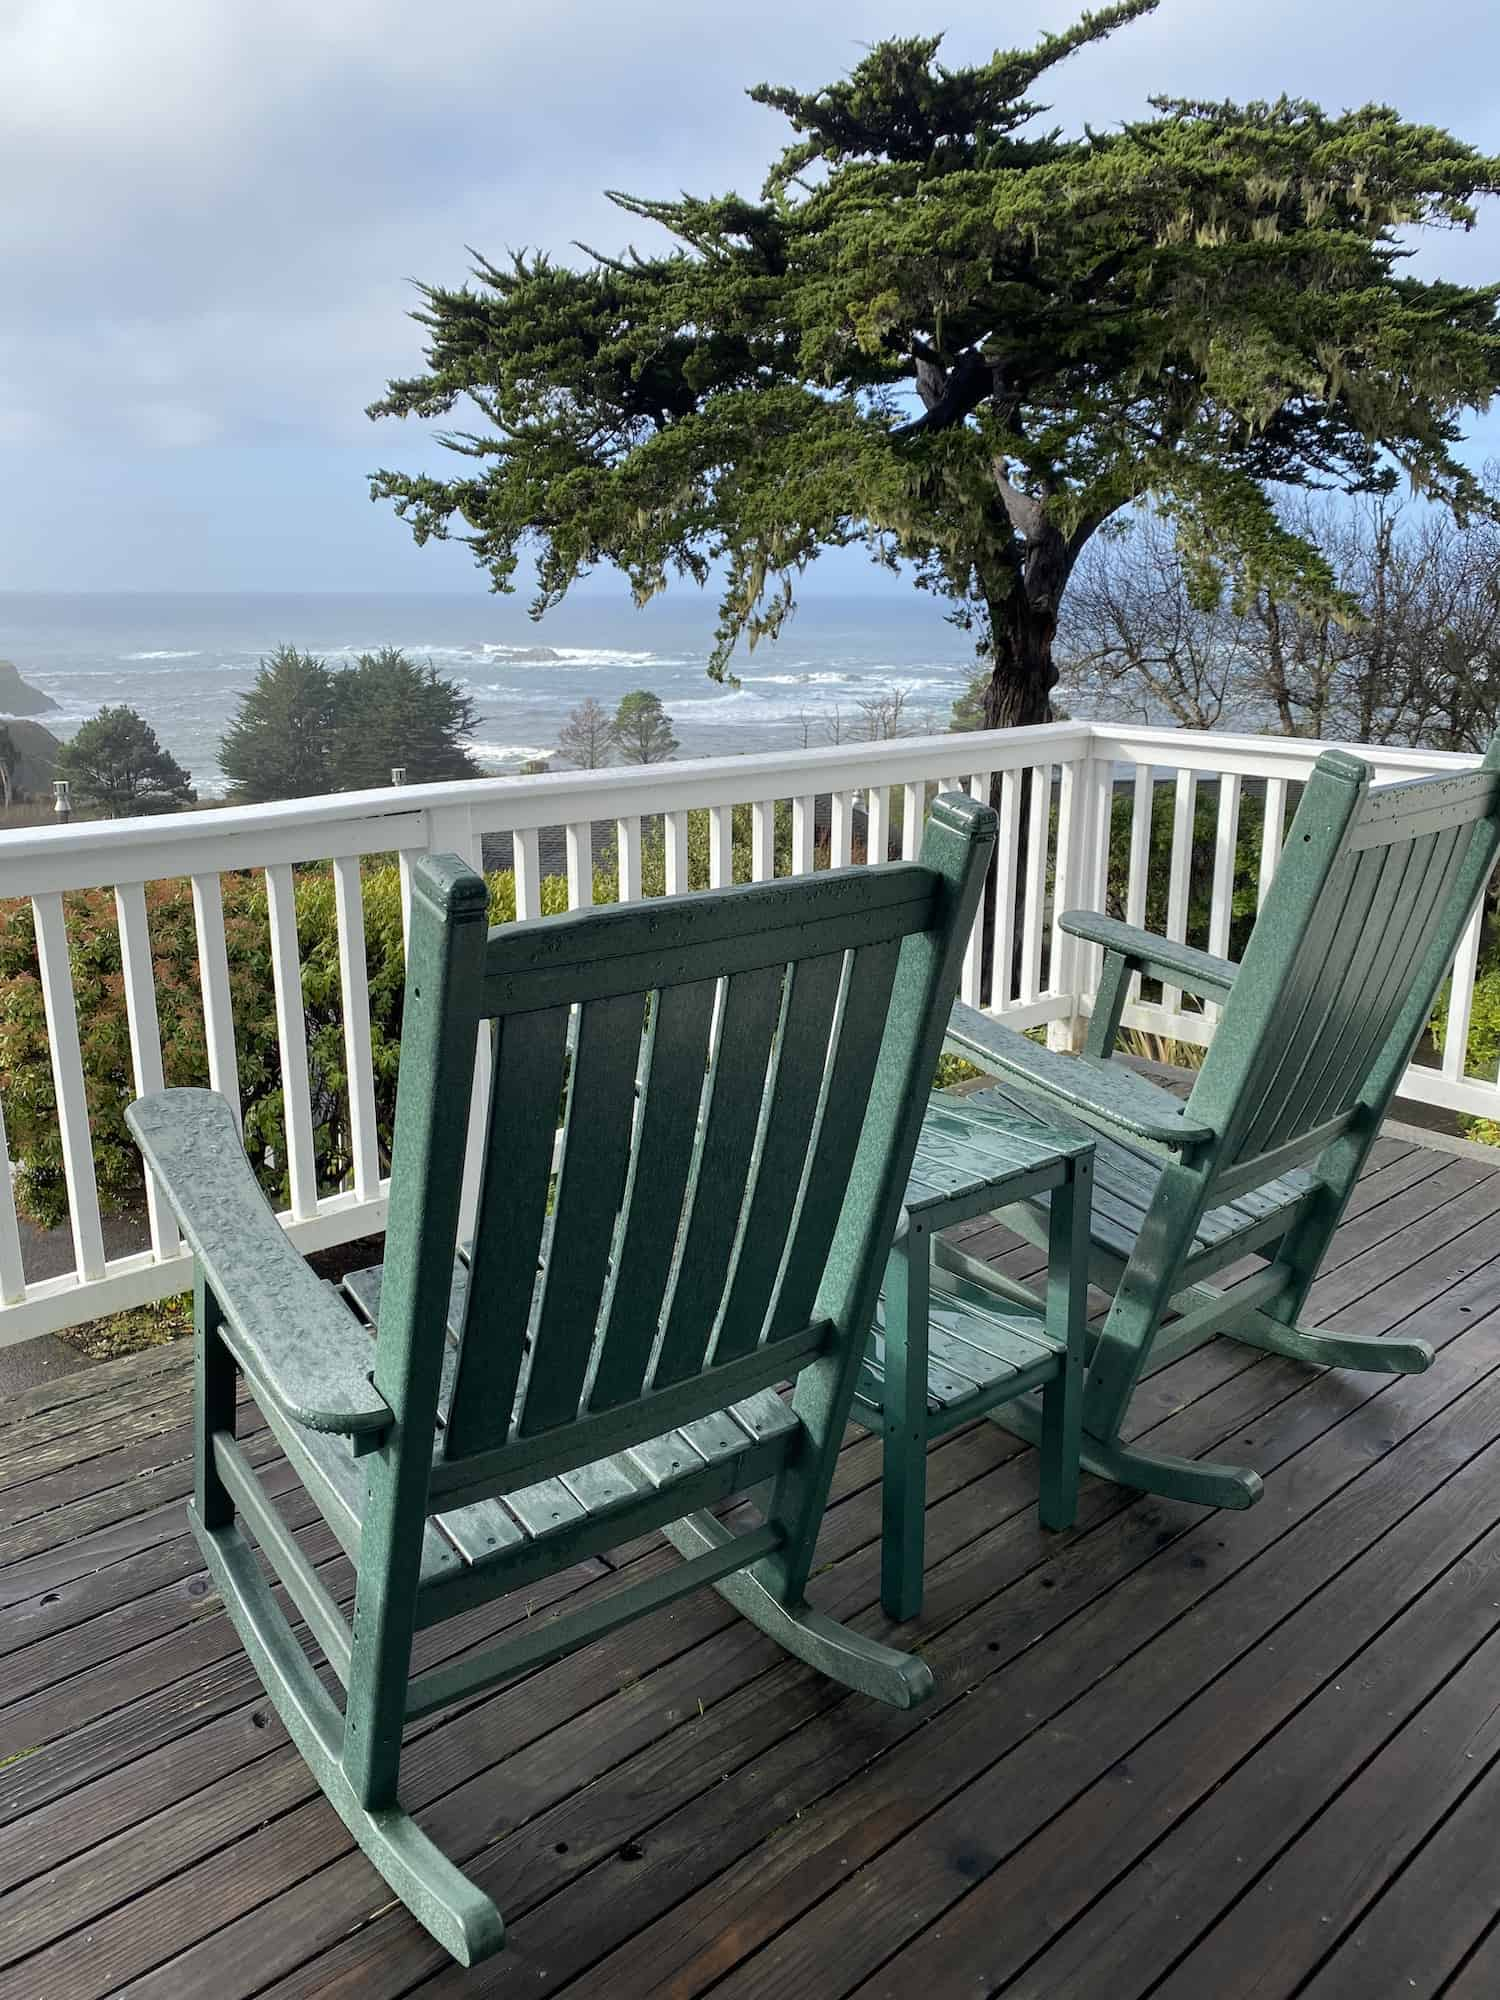 Mendocino - Little River Inn